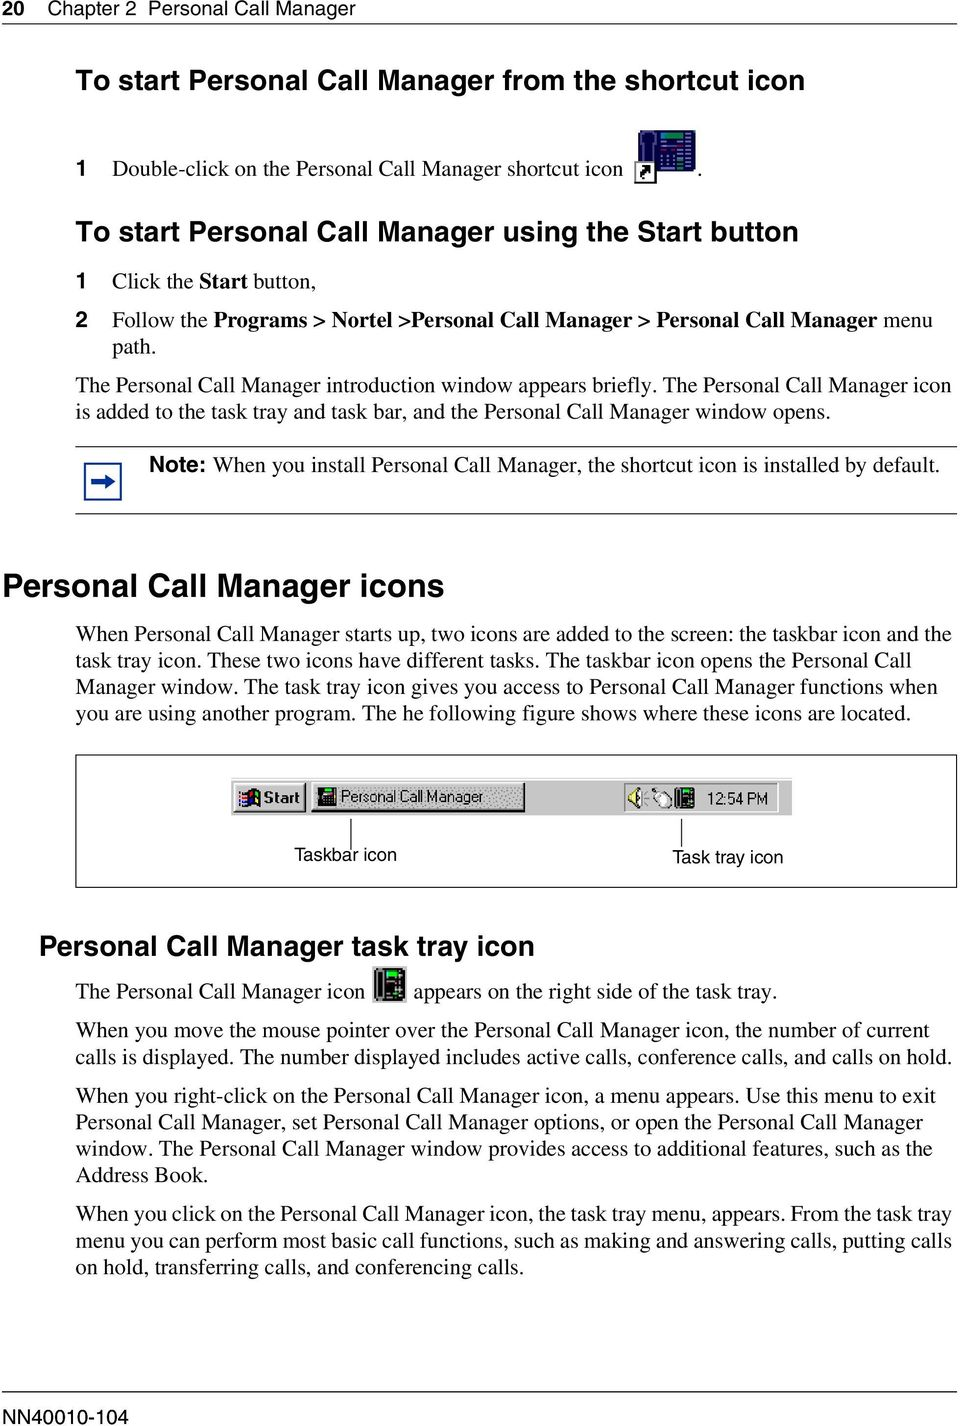 The Personal Call Manager introduction window appears briefly. The Personal Call Manager icon is added to the task tray and task bar, and the Personal Call Manager window opens.